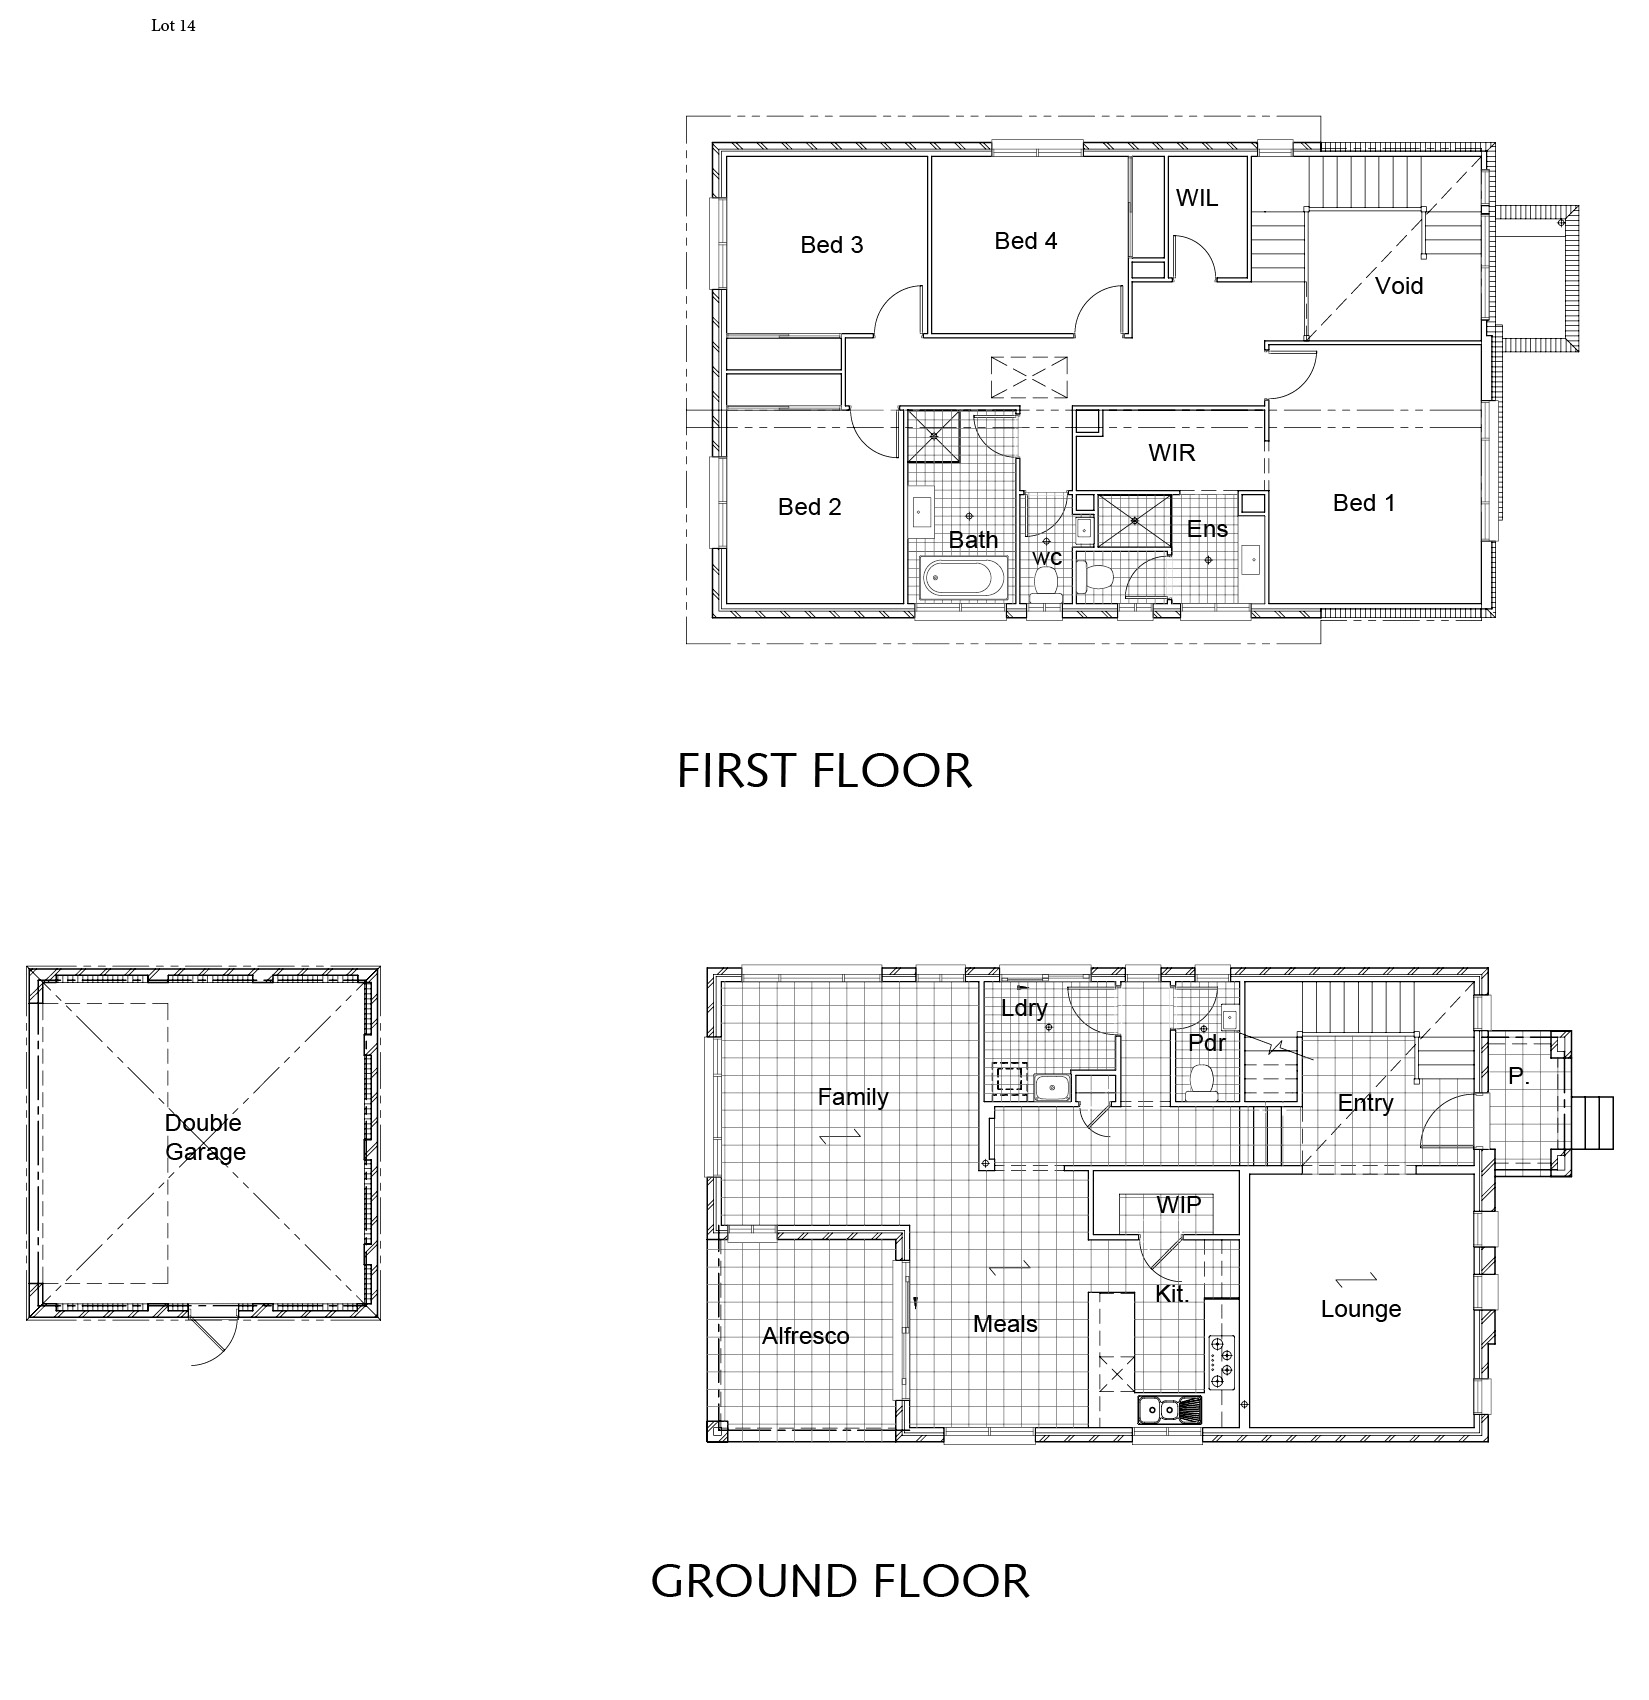 Lot 14 - Hezlett Road_Plan